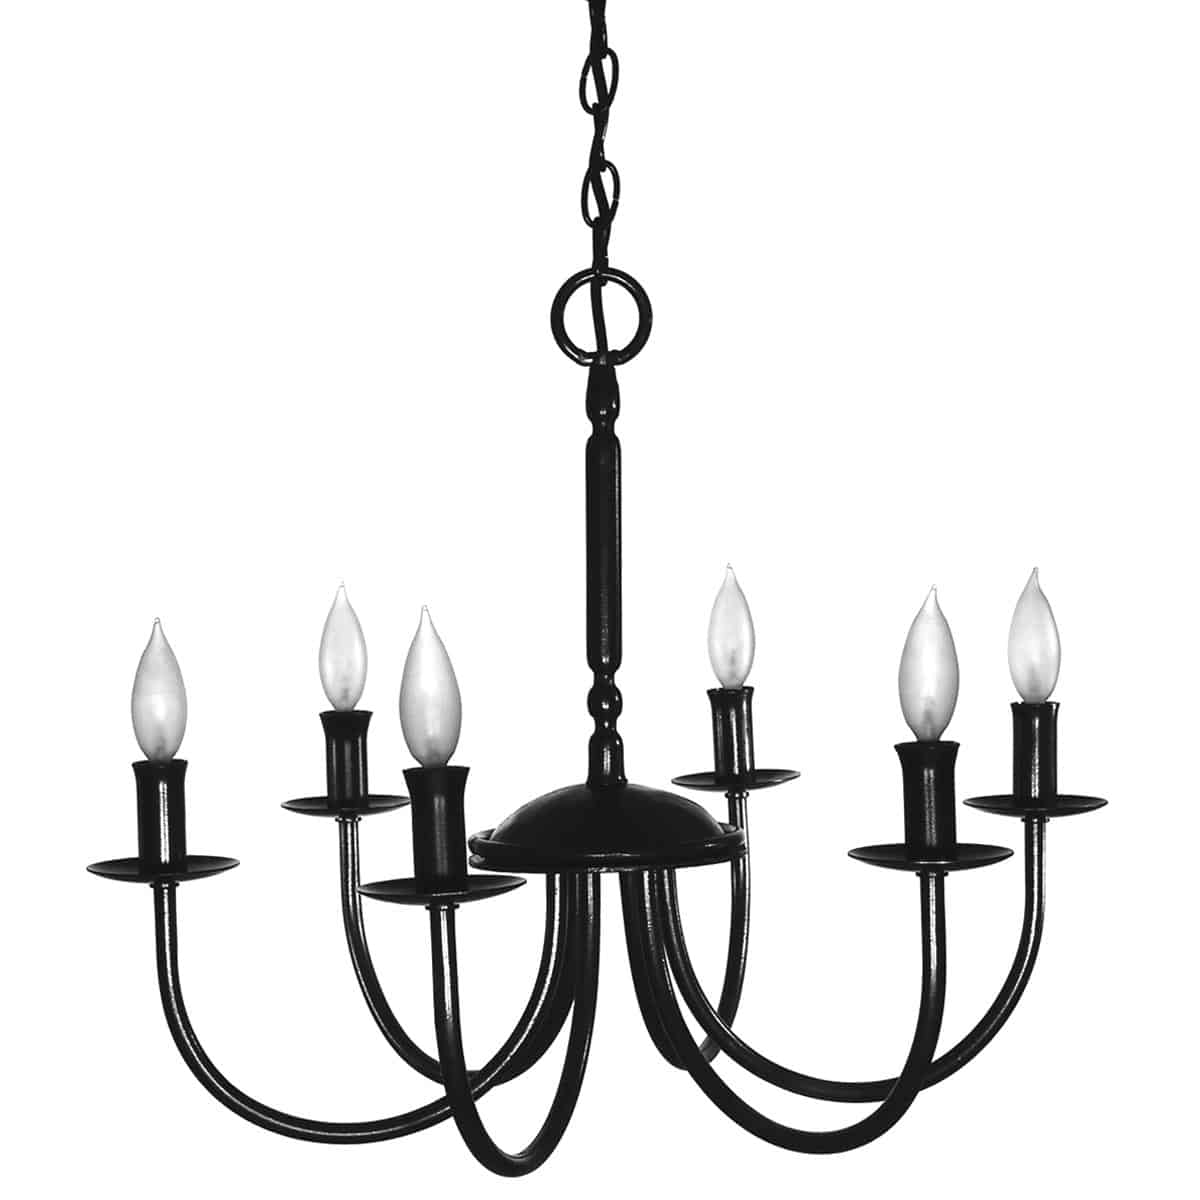 6 Light Chandelier, Lumina